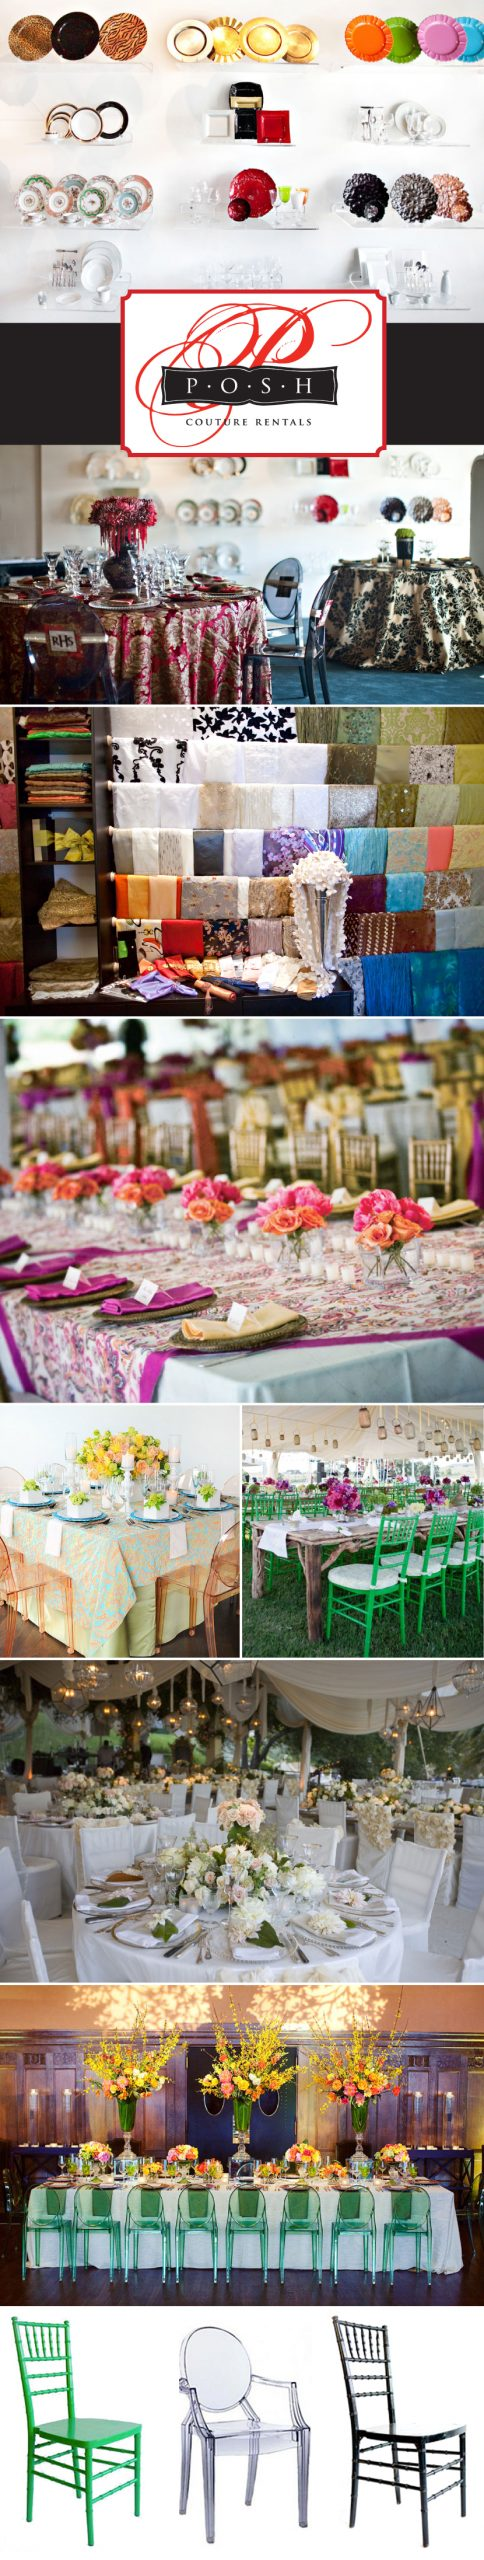 Wedding rentals from Posh Couture Rentals in Dallas Texas